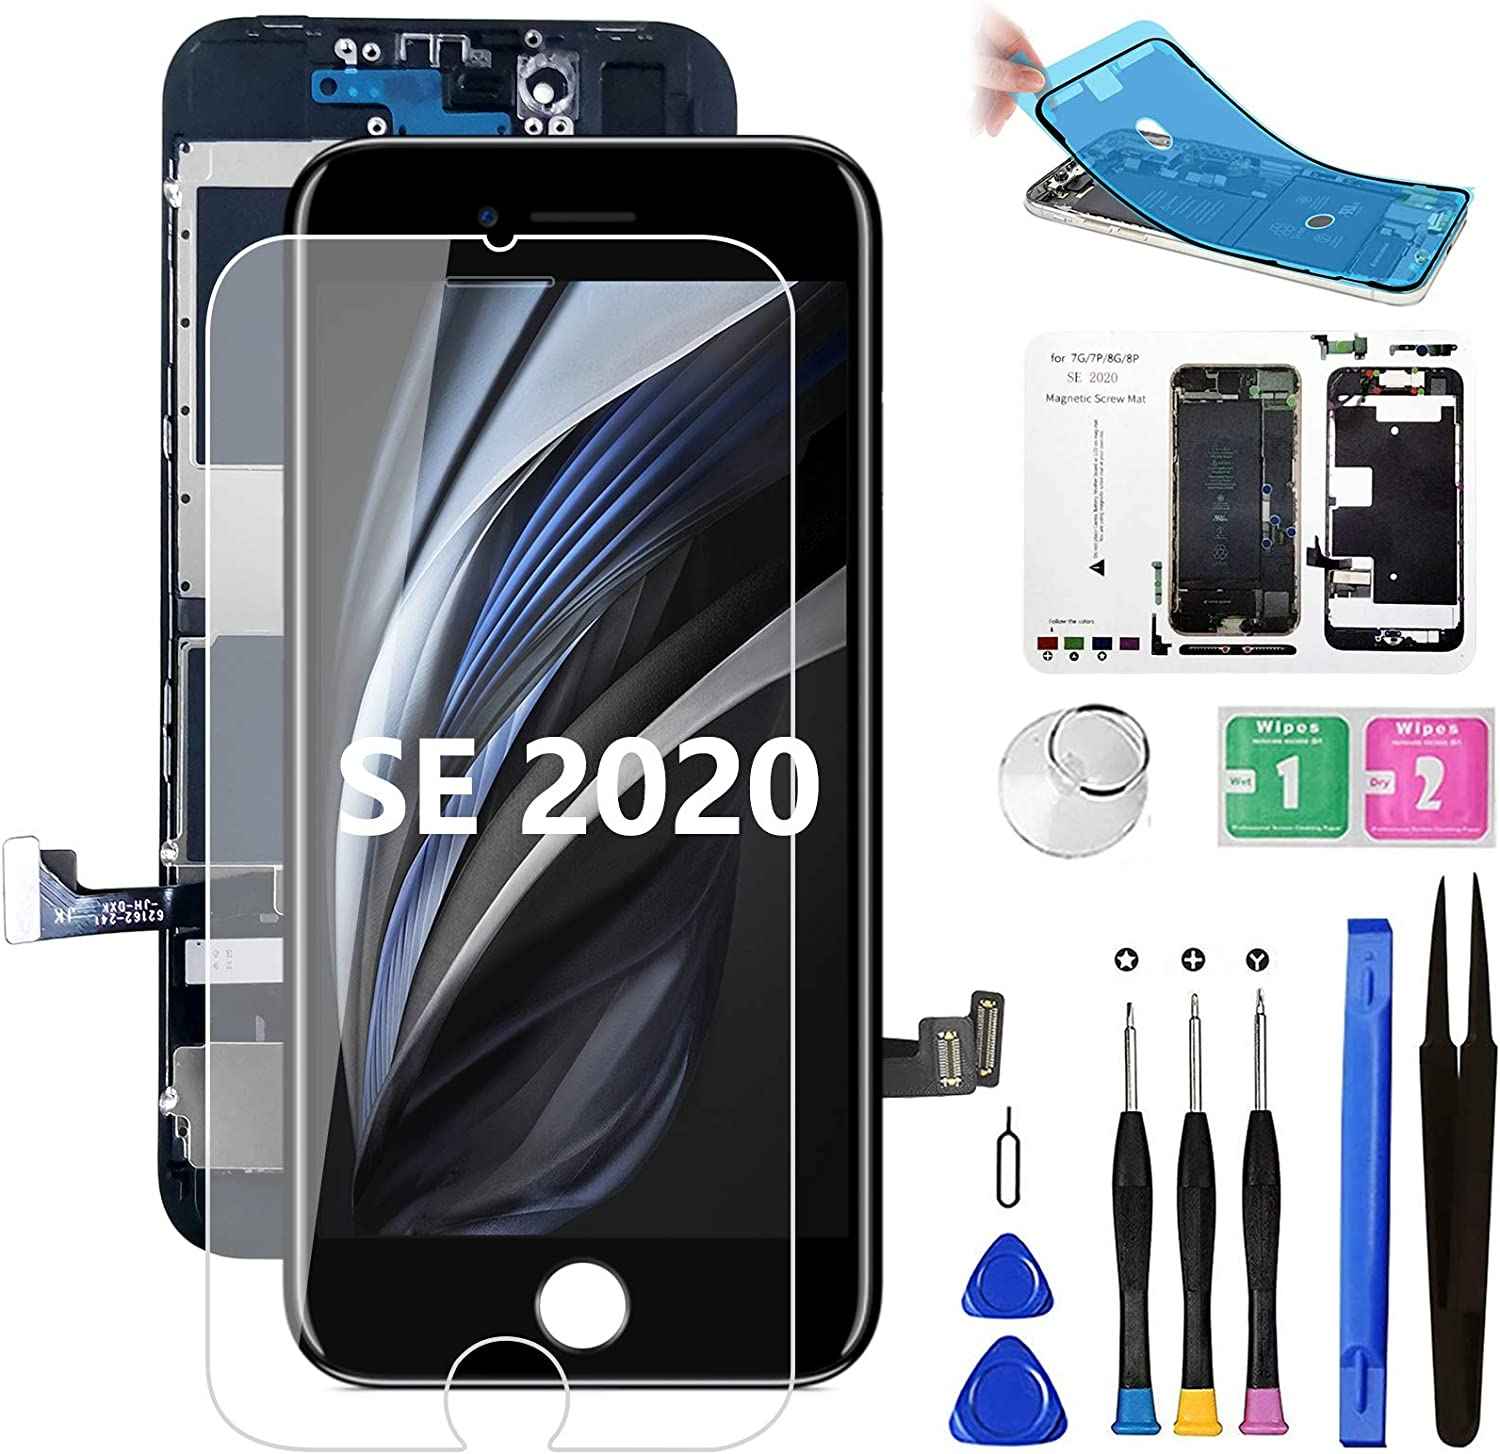 Diykitpl for iPhone SE 2020 2nd Generation Screen Replacement Black, Full Assembly LCD Touch Digitizer with Repair Tools for A2275, A2298, A2296.with Waterproof Seal+Repair Tools+Screen Protector